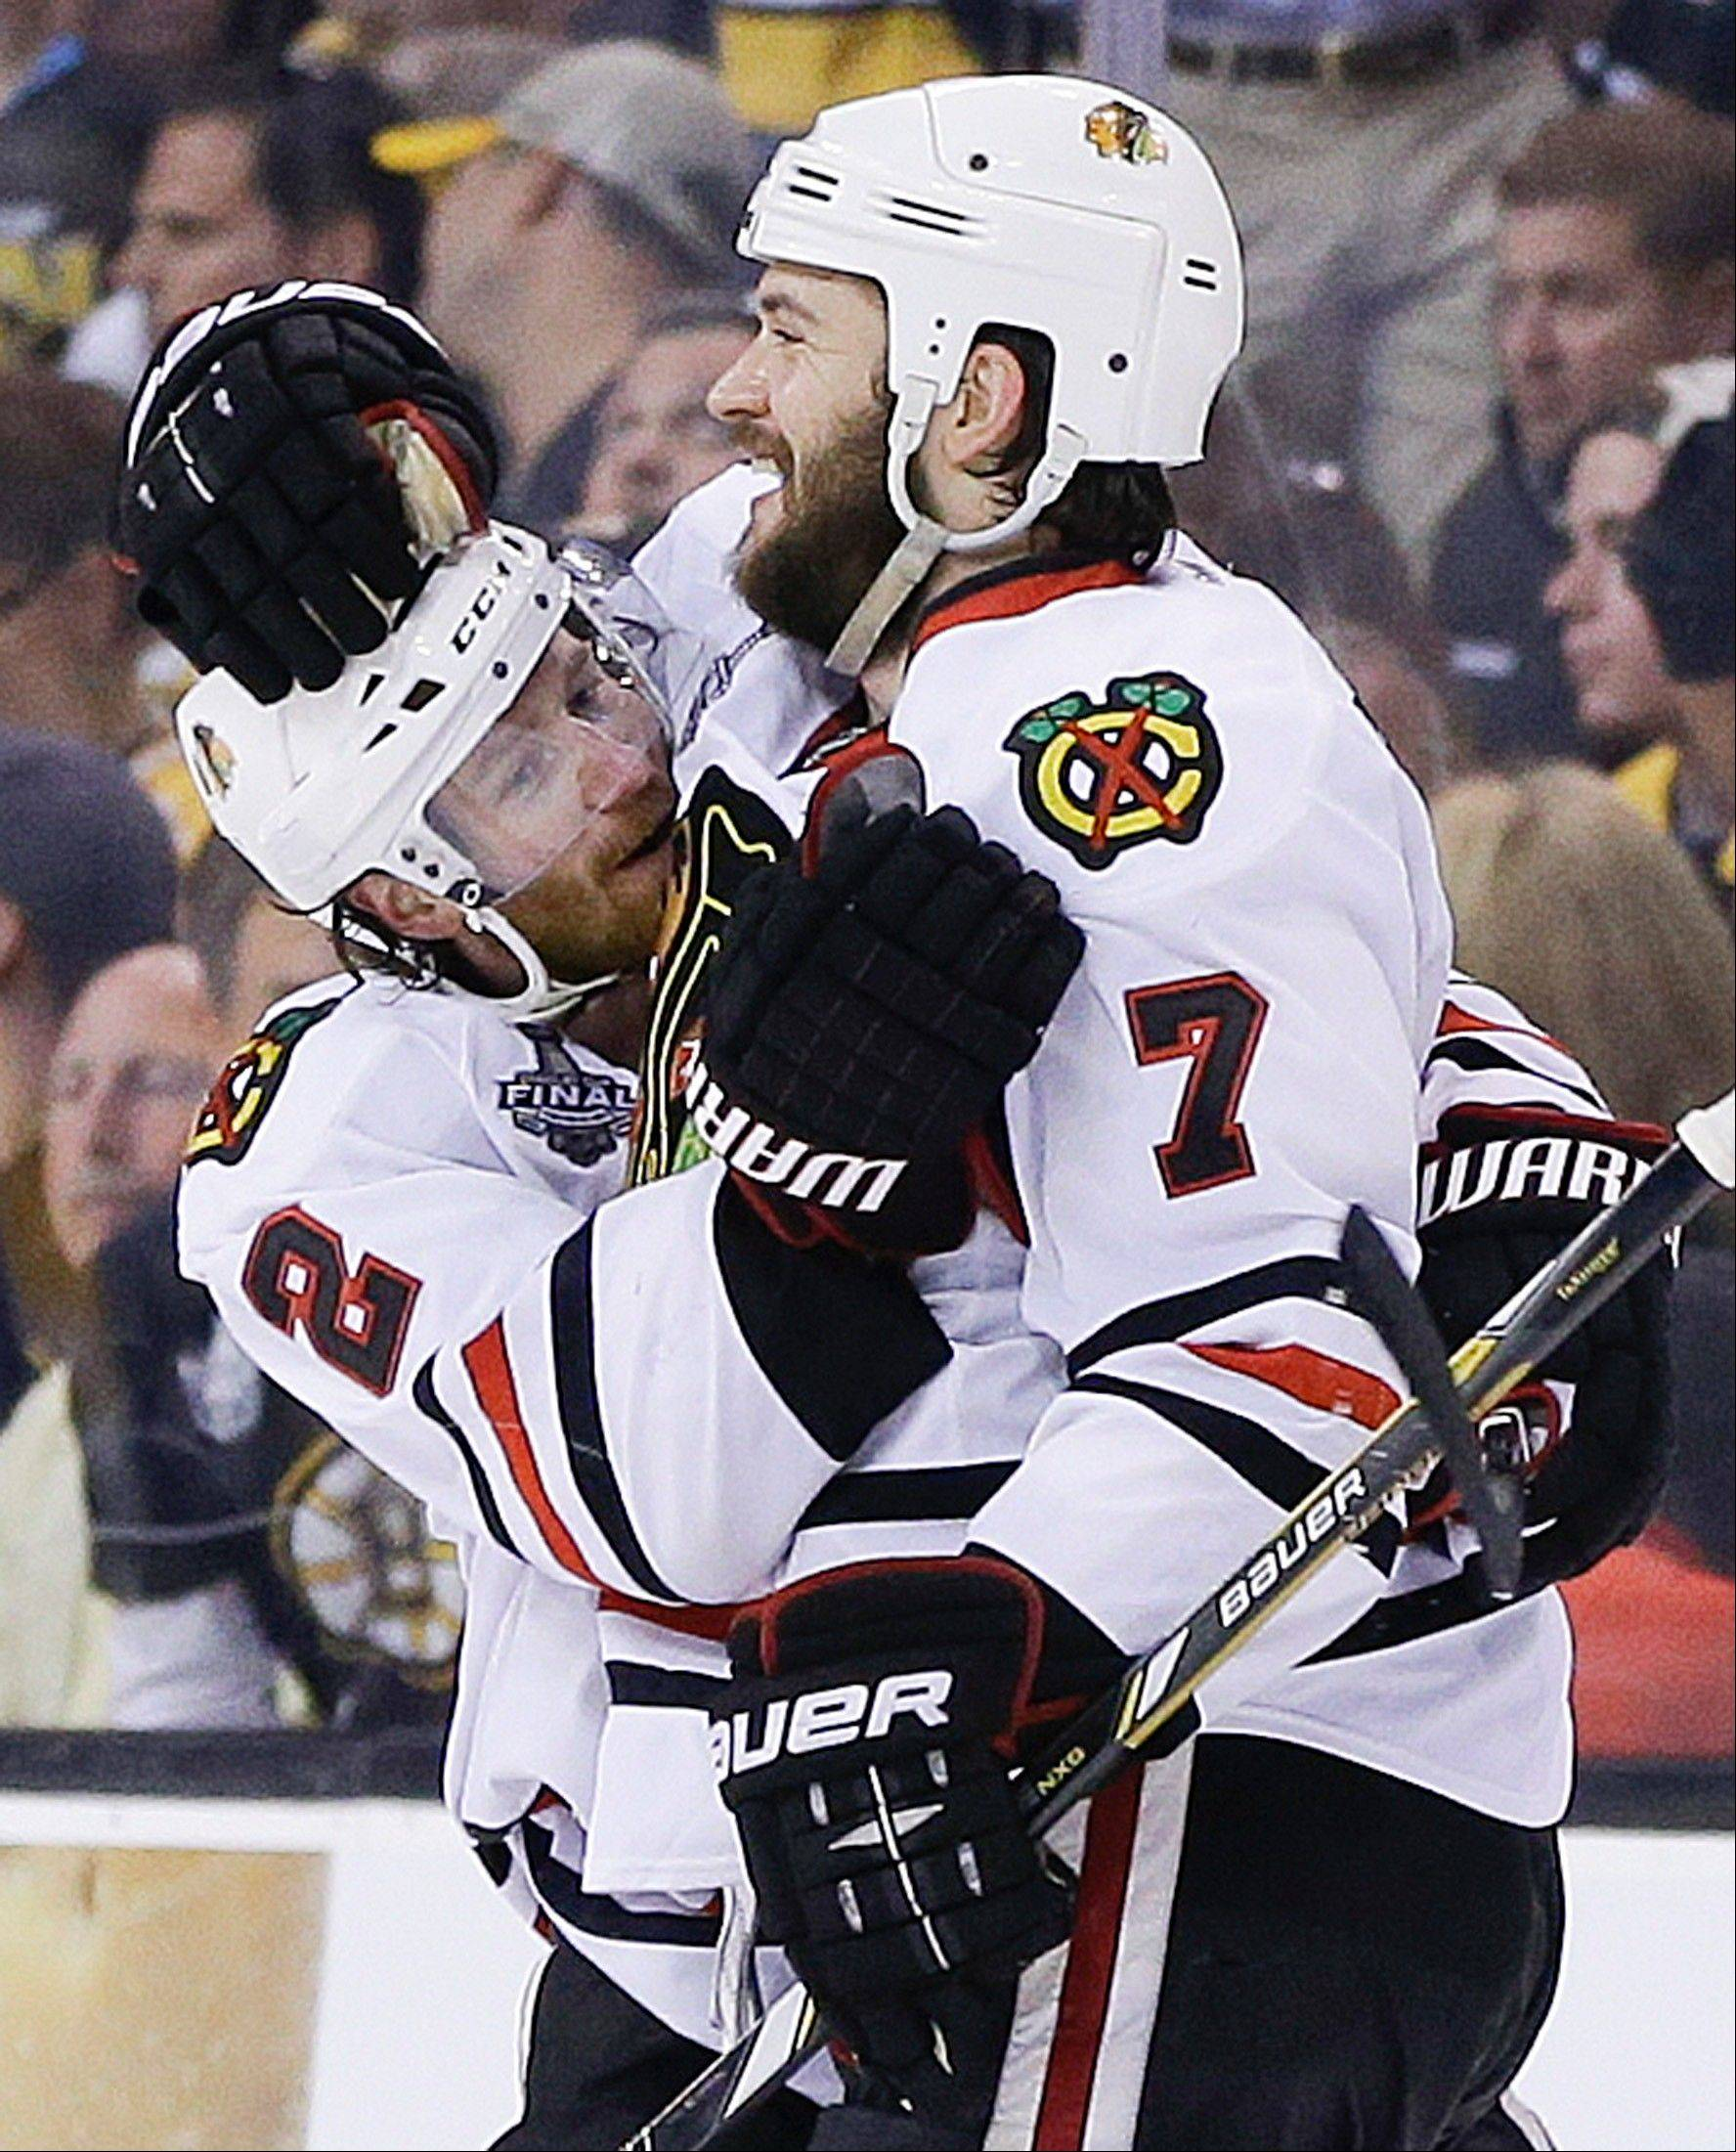 Seabrook's goal give Hawks a win they had to have